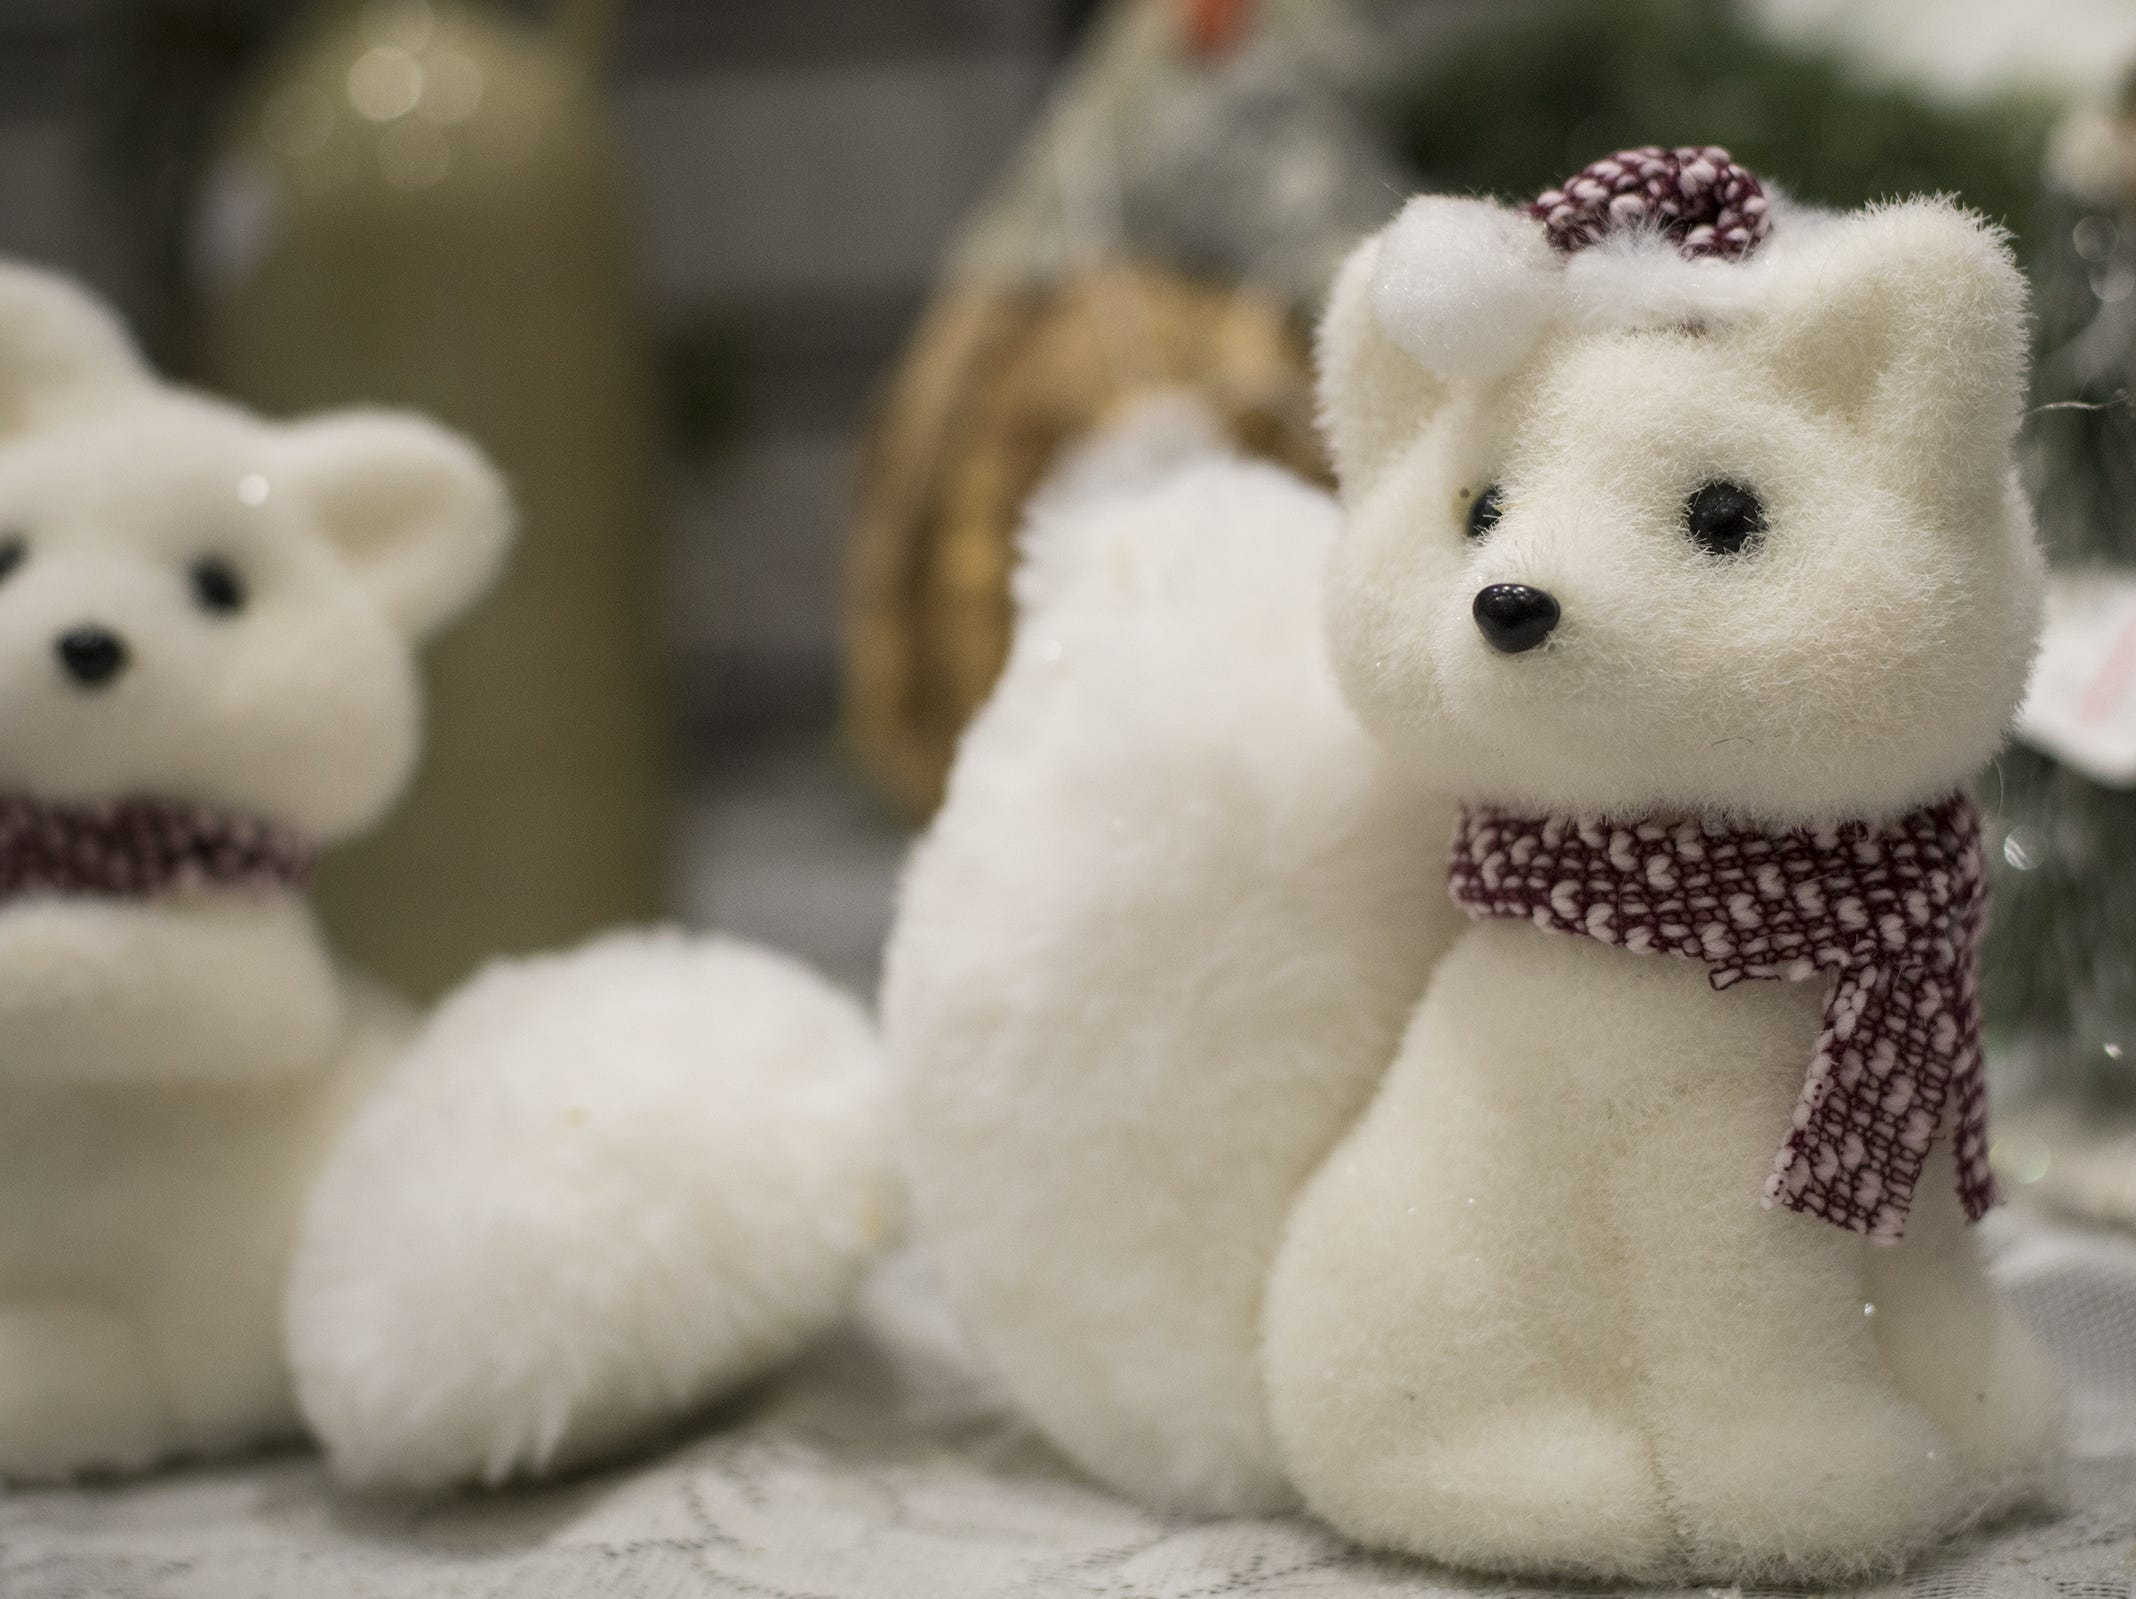 Caroline Collectibles offers holiday decorations and knick-knacks during the Greater Cincinnati Holiday Market at the Duke Energy Center Friday, November 2, 2018 in Cincinnati, Ohio.